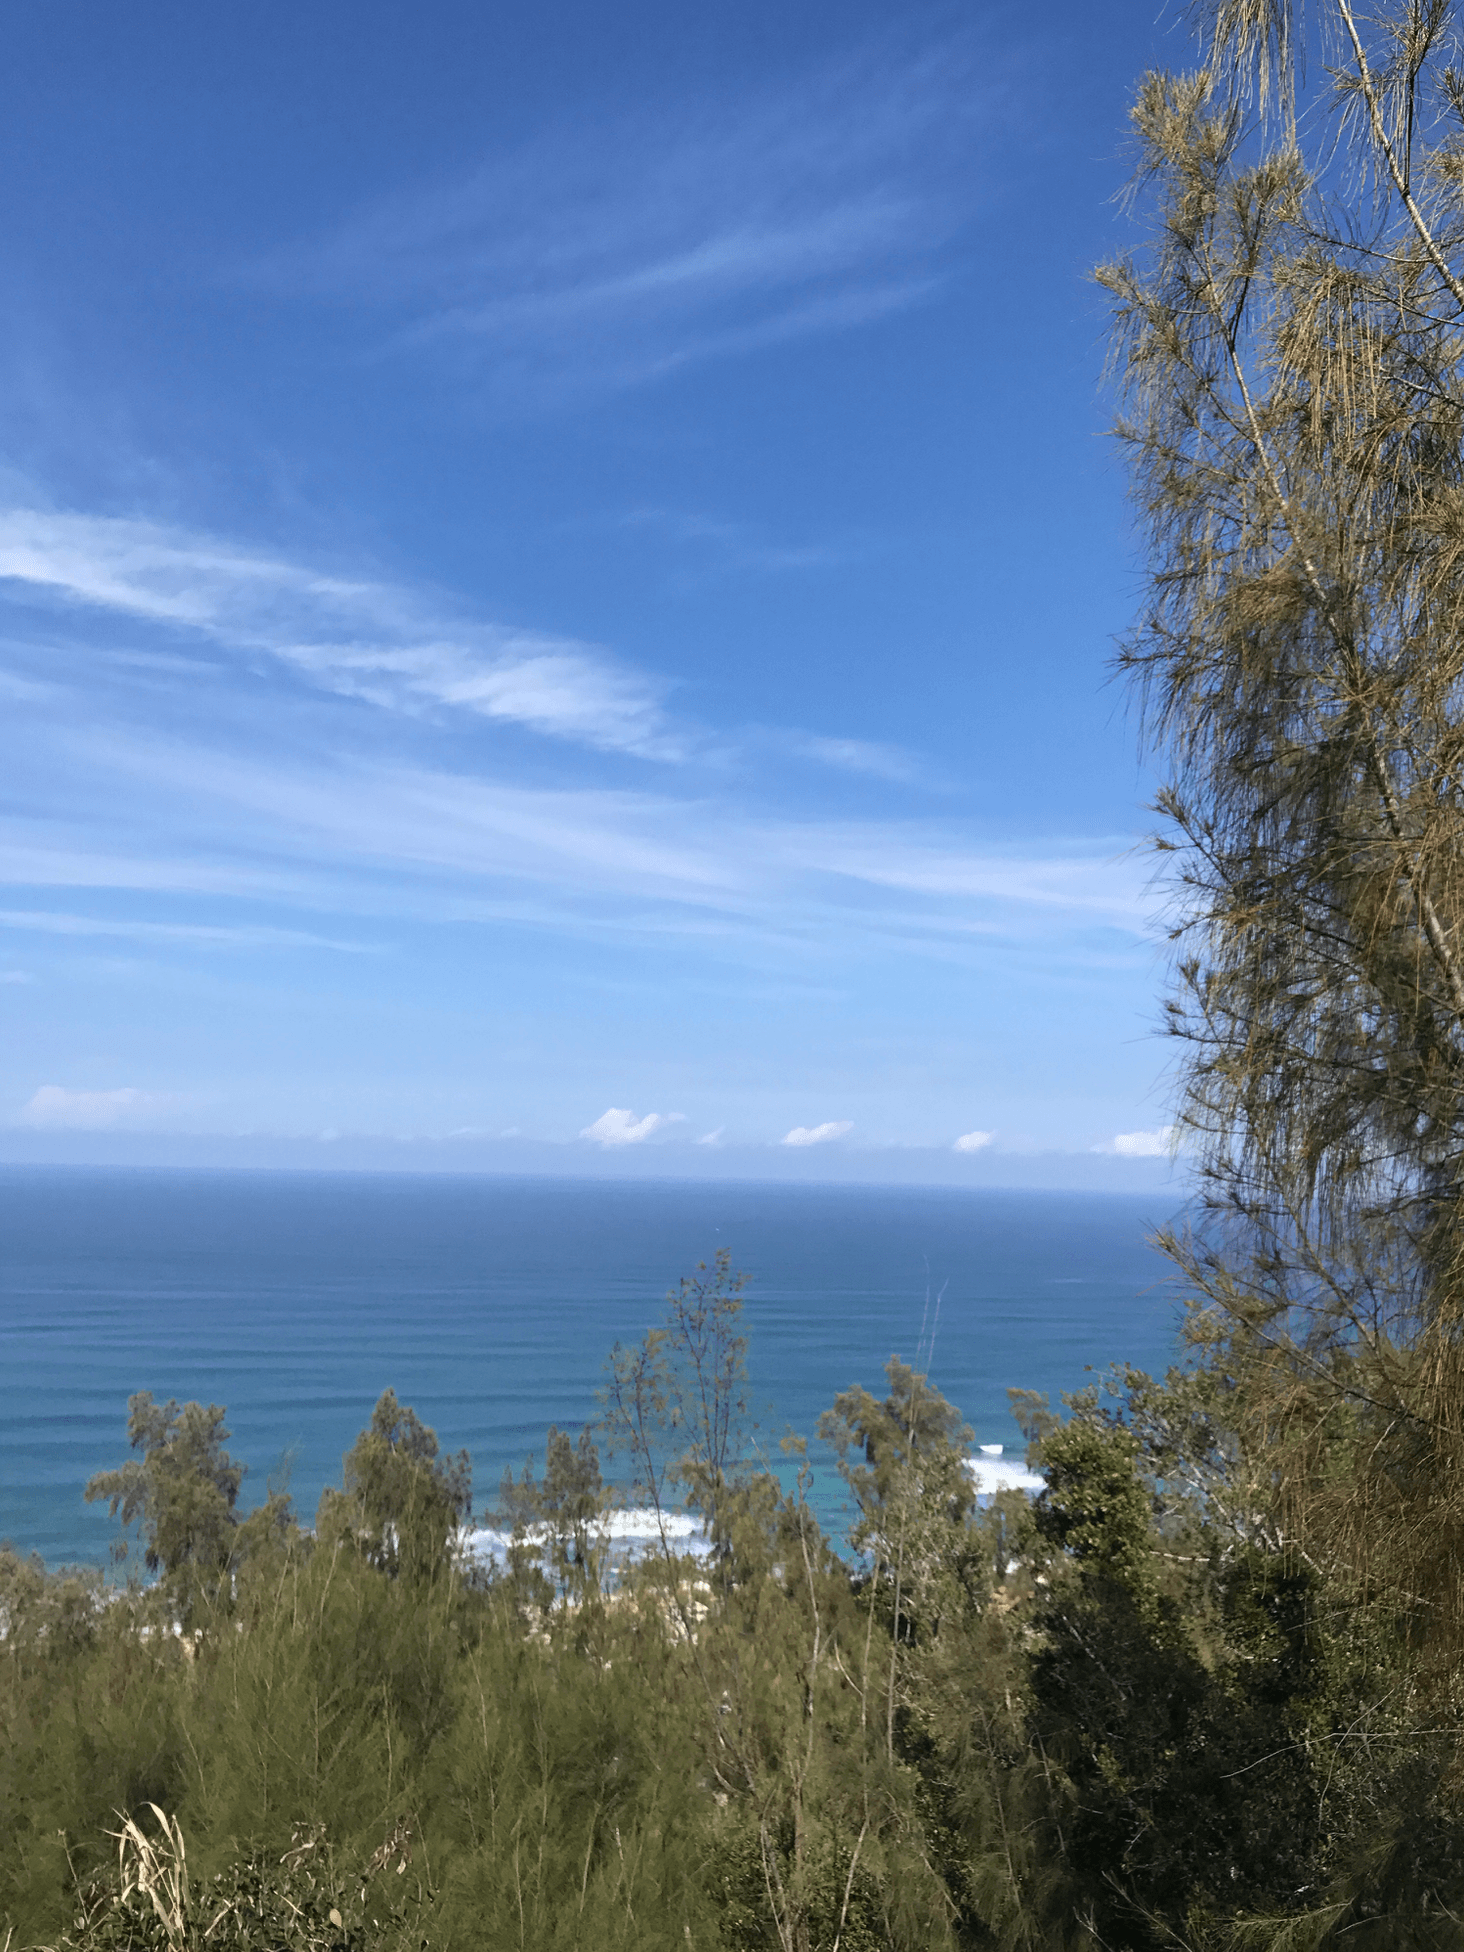 Hiking In Hawaii: Ehukai Pillbox Hike- Oahu Hikes - Easy Oahu Hikes - Oahu Hikes For Families - North Shore Pillboxes - Ehukai Pillbox Hikes - North Shore Oahu Hikes - Quick Oahu Hikes - Beautiful Hawaii Hikes - #hawaii #oahu #travelblog